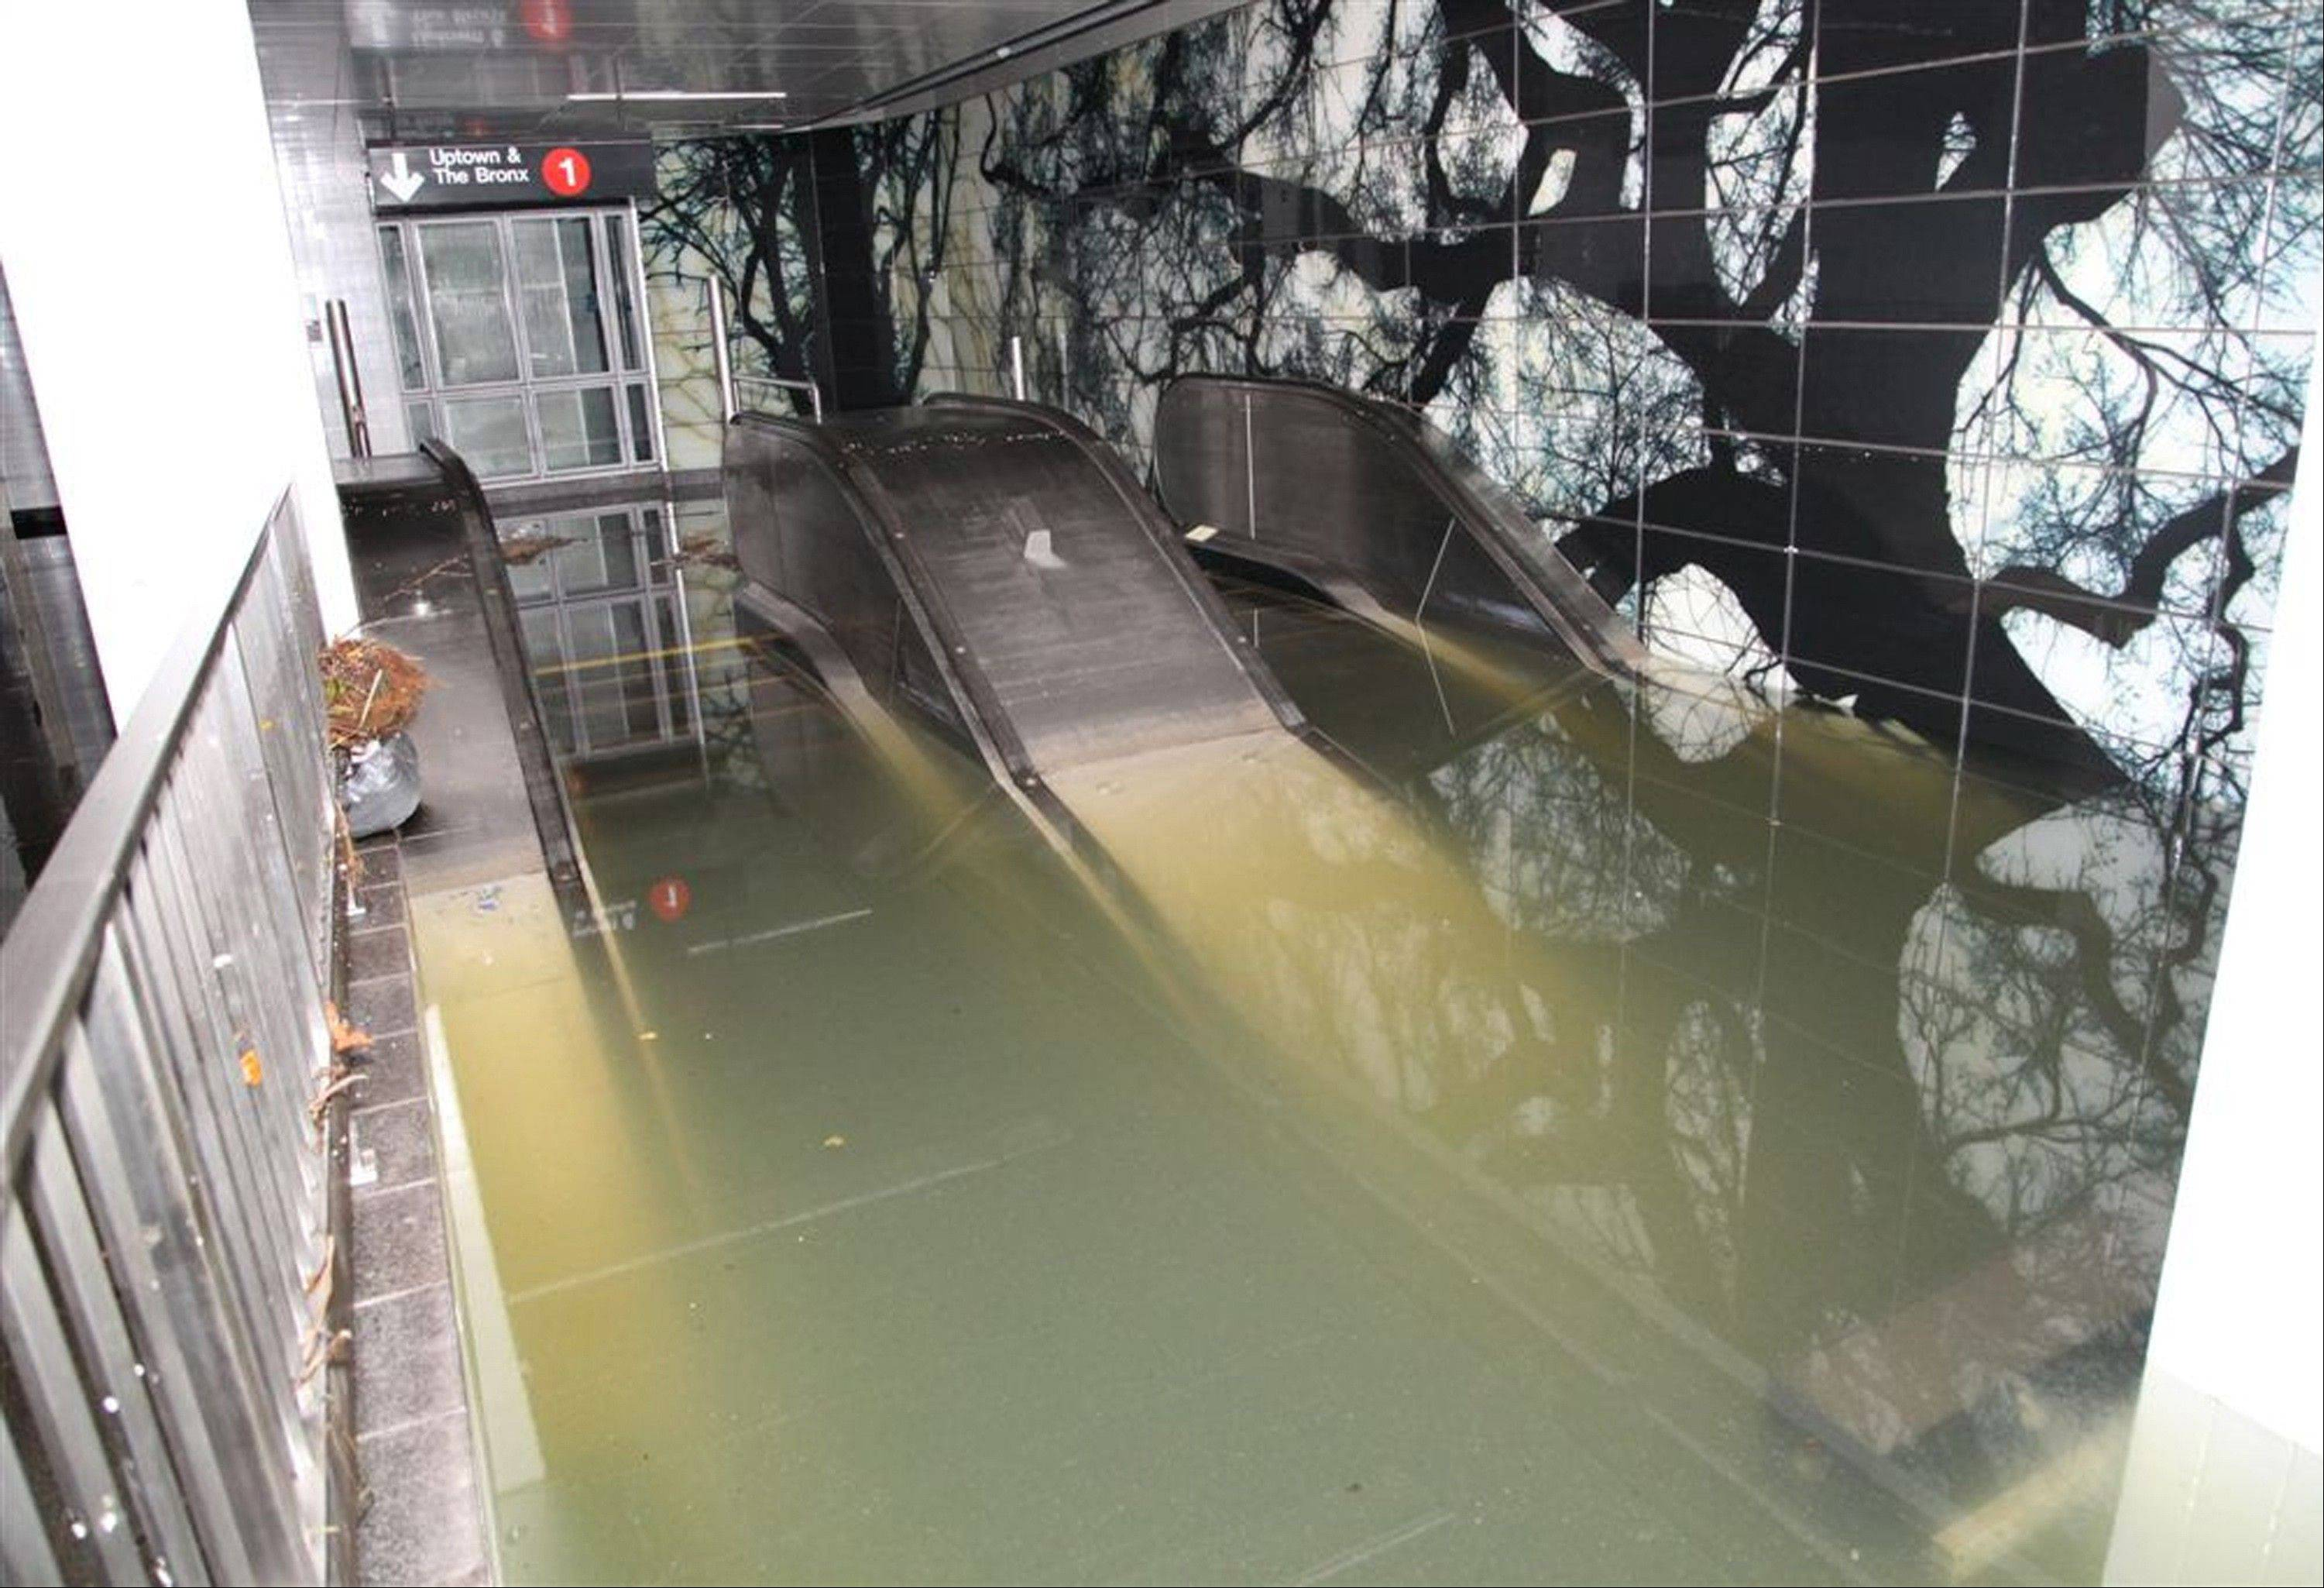 New York's Metropolitan Transportation Authority, floodwaters rise above the top stair of an esc